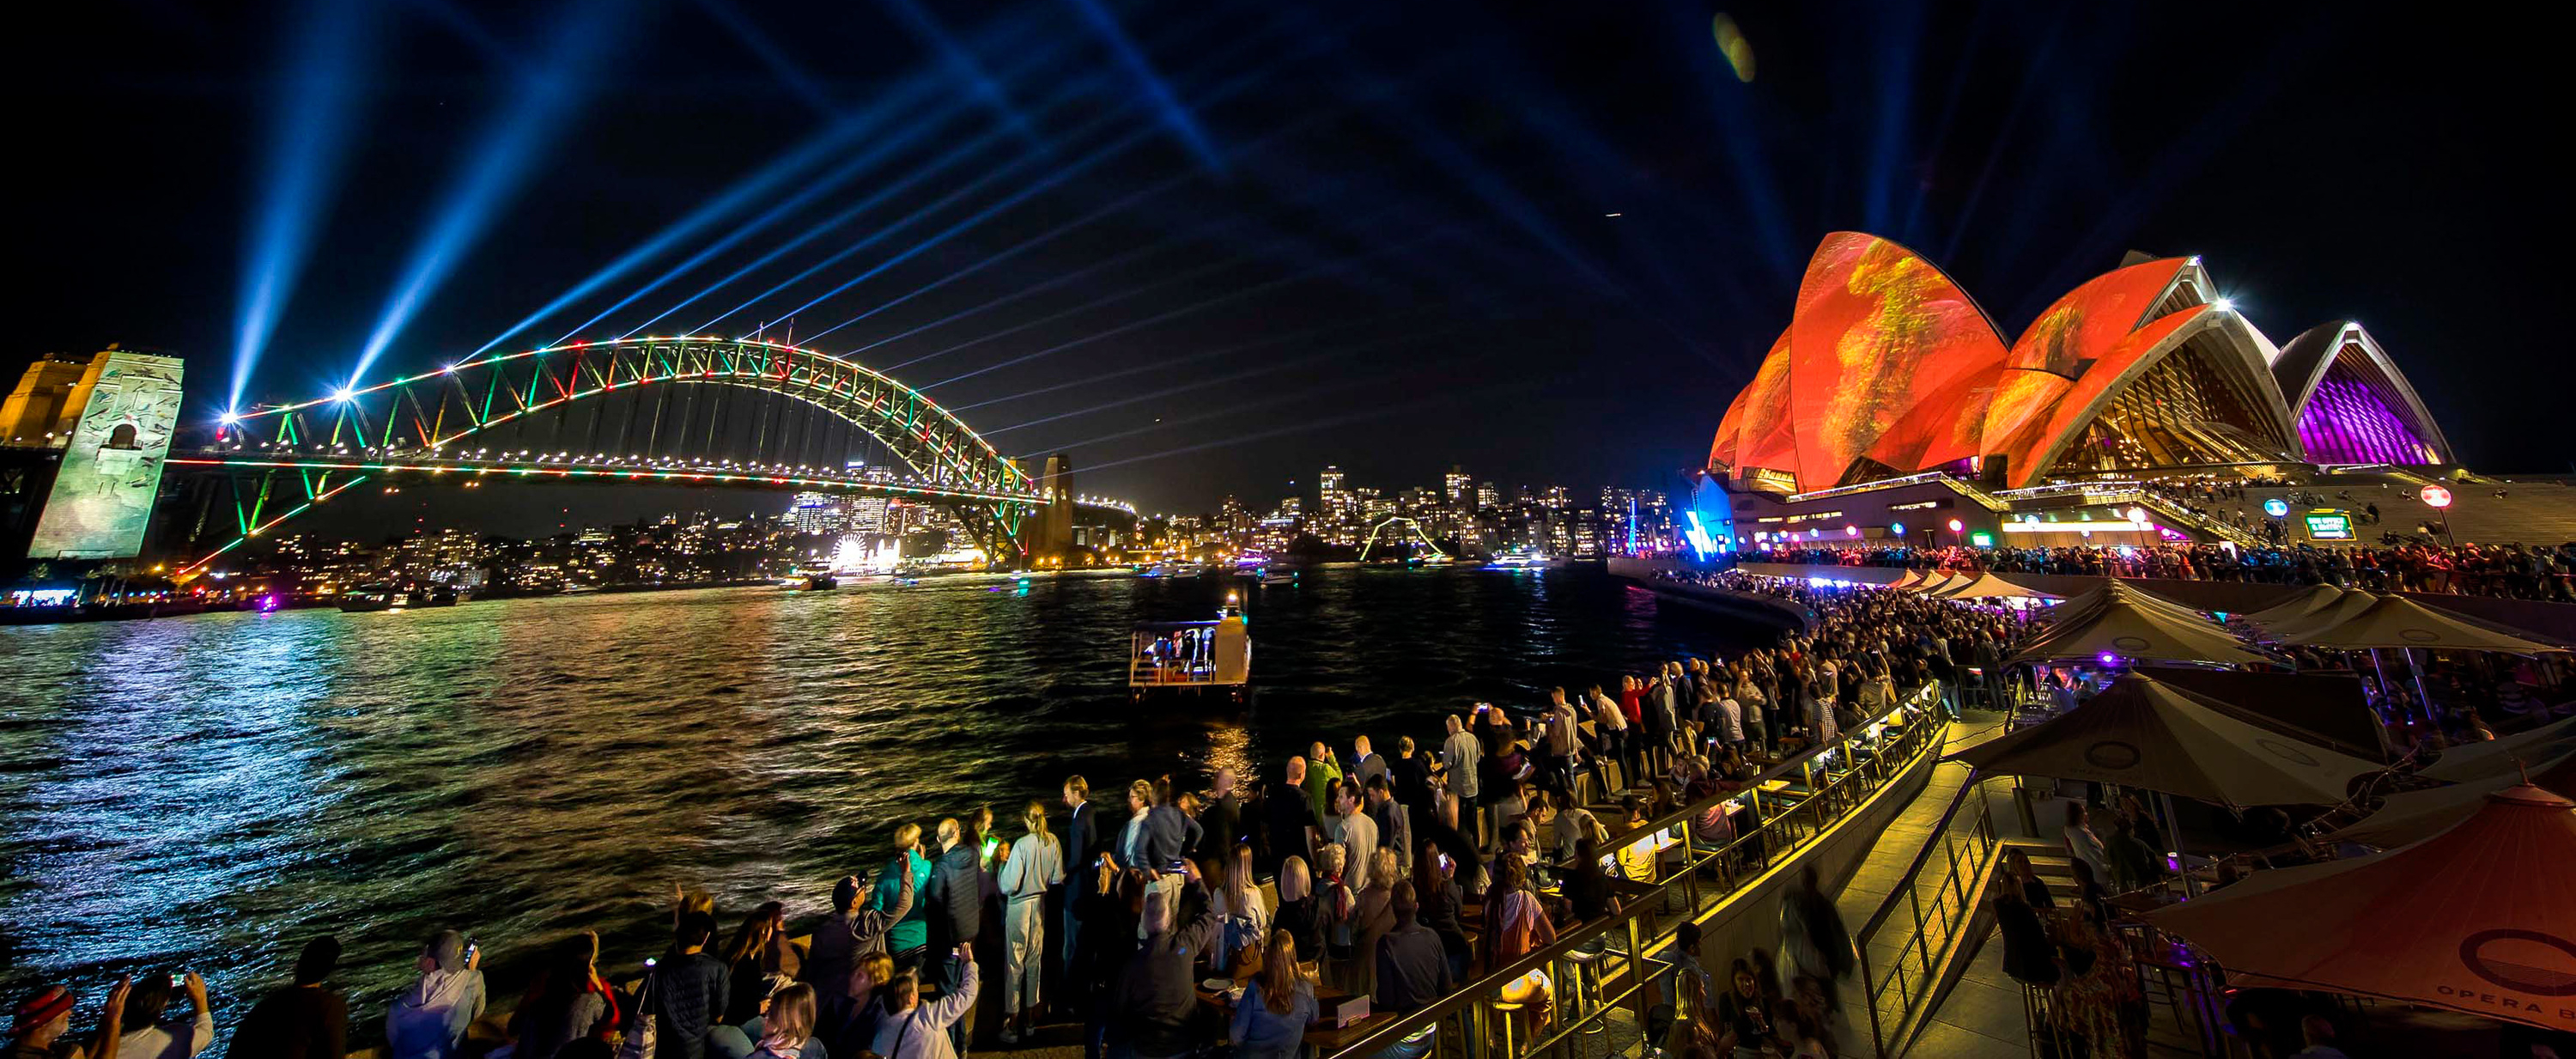 Vivid Sydney has scored a brand-new festival director ahead of this year's light show